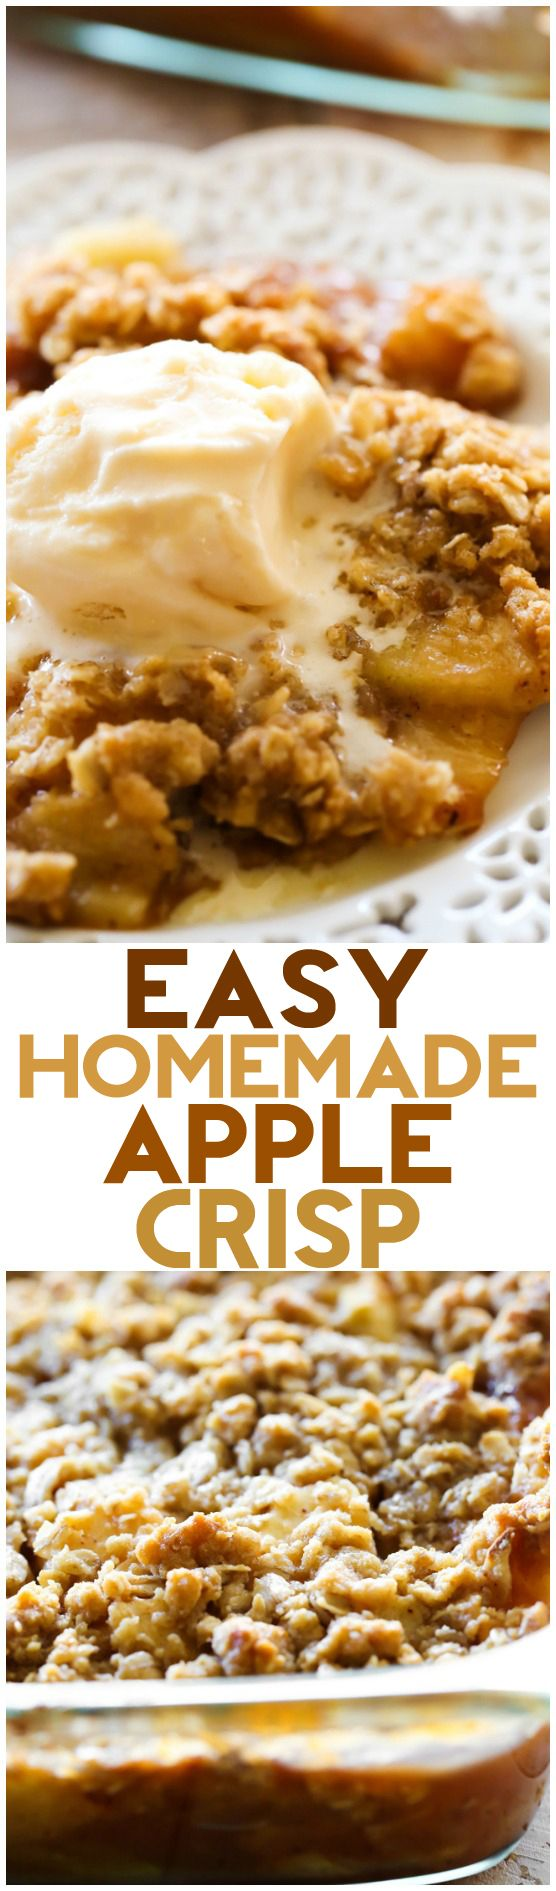 Easy Homemade Apple Crisp... this recipe is absolutely wonderful! Perfect flavor, texture and always a hit!: